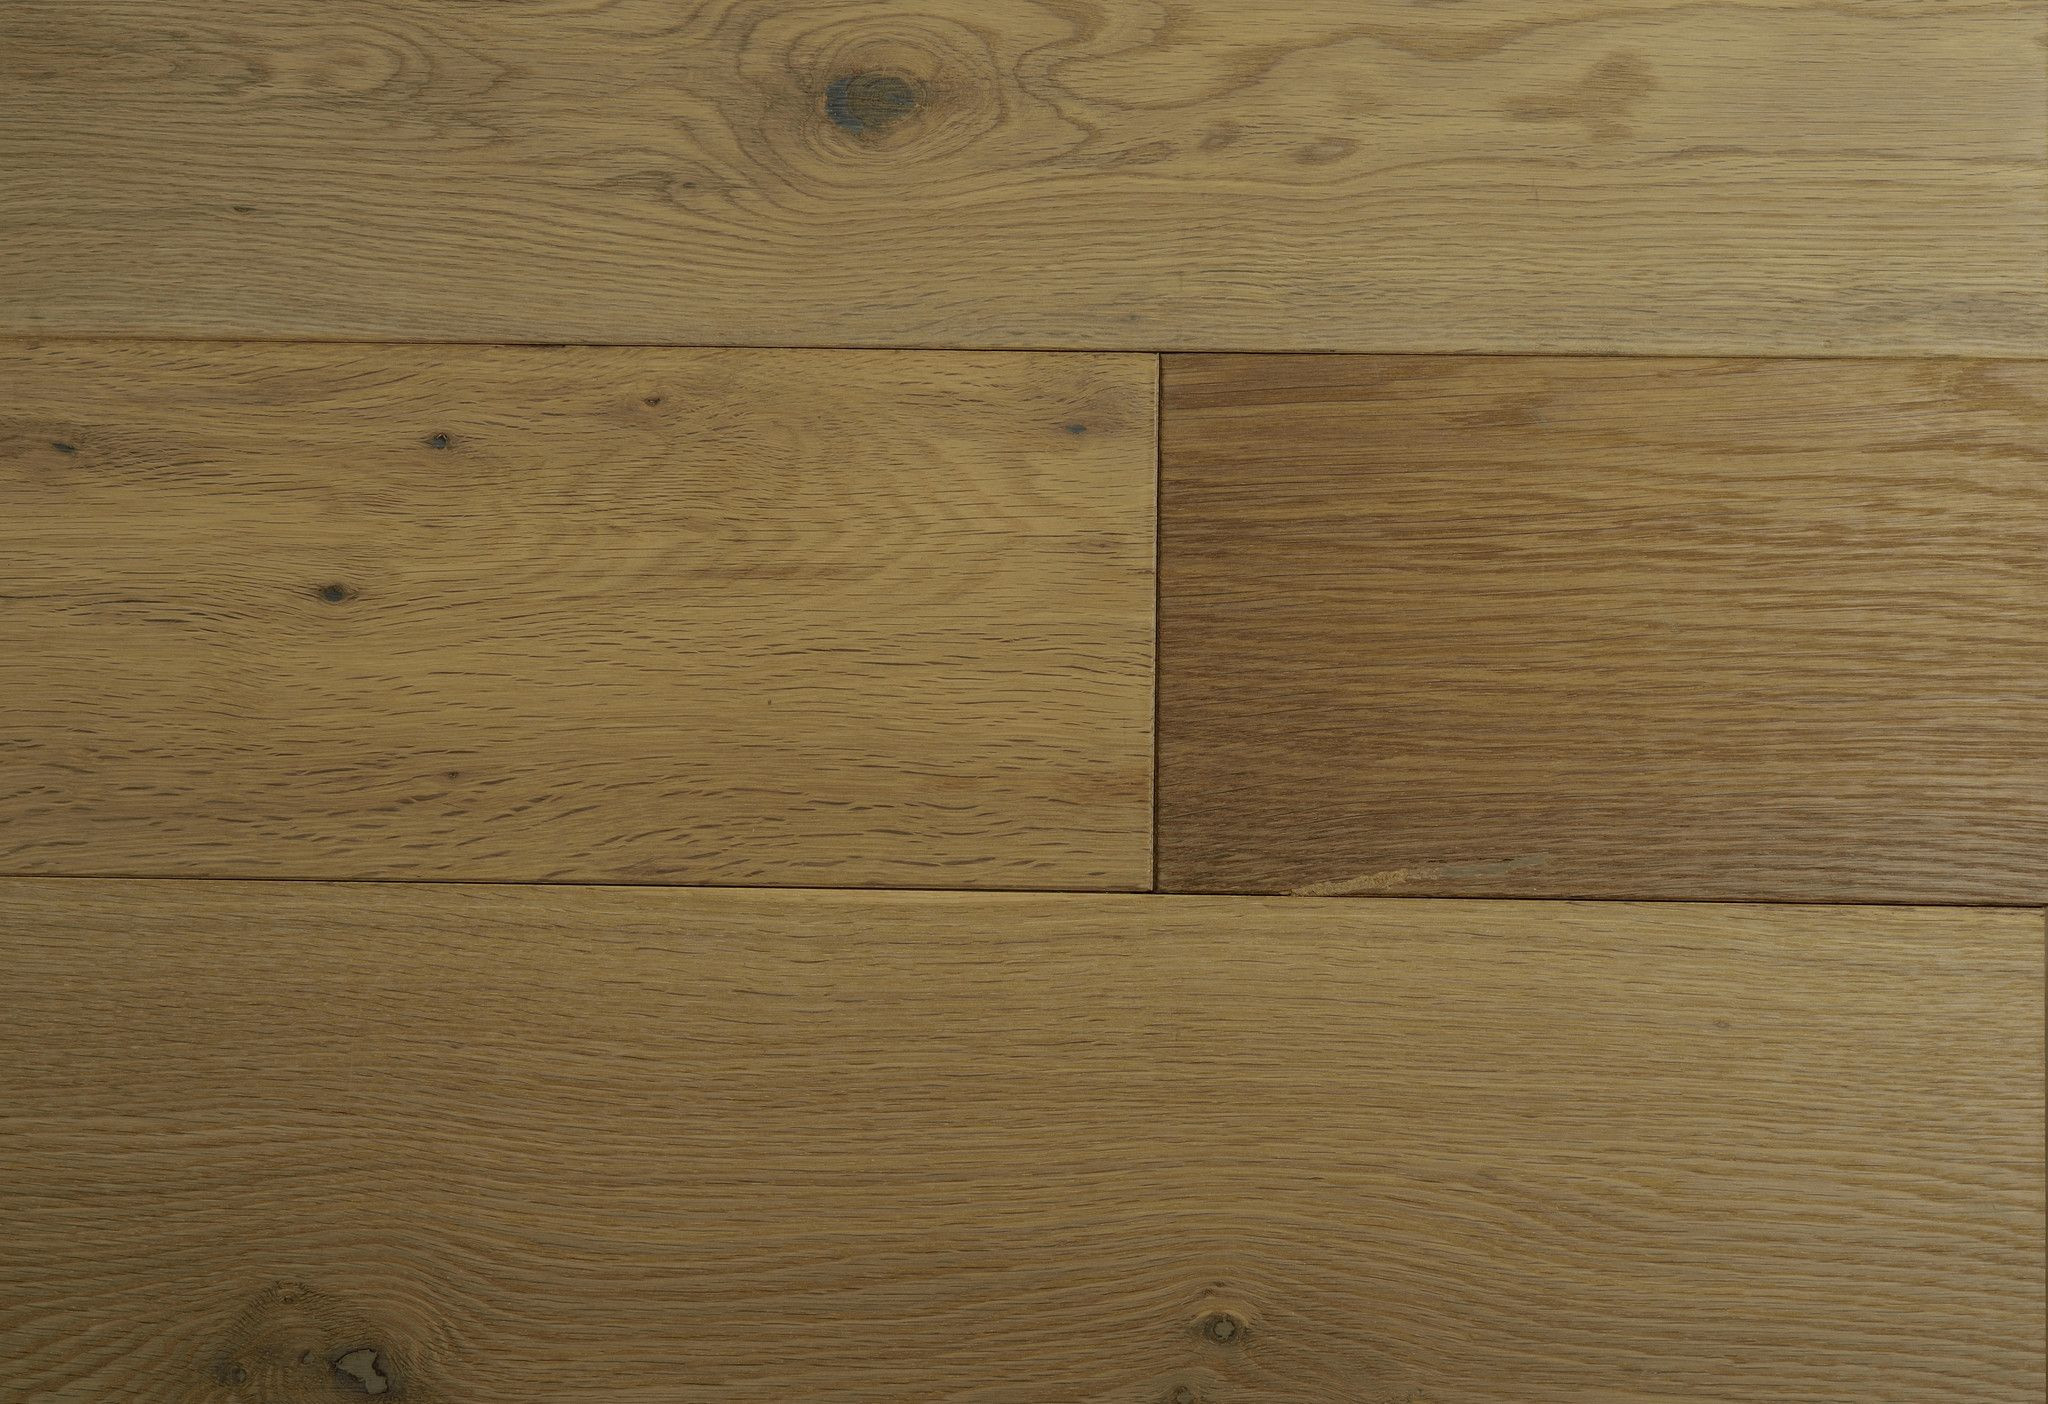 3 oak hardwood flooring of everbrite white oak smoked solid 3 4 white oak wax and products regarding everbrite white oak smoked solid 3 4